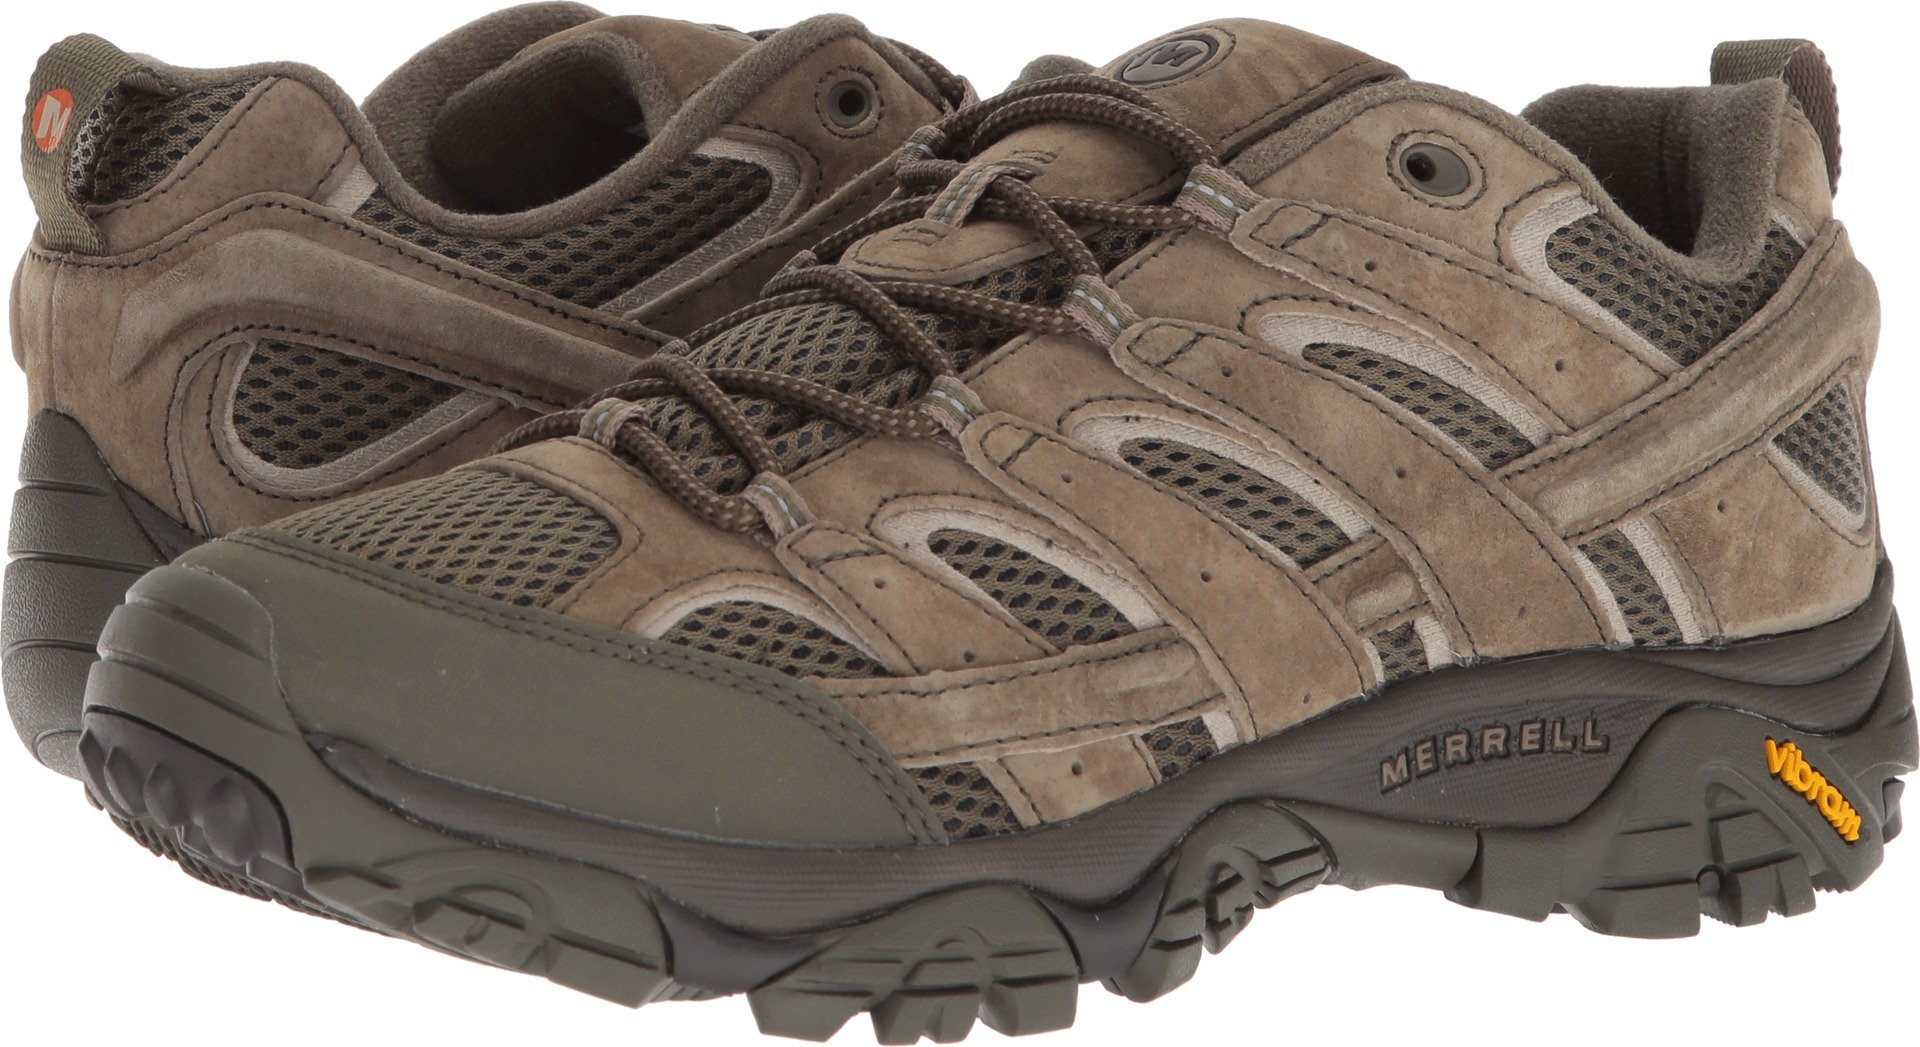 Merrell Men's Moab 2 Vent Hiking Shoe (11.5 D(M) US, Dusty Olive)